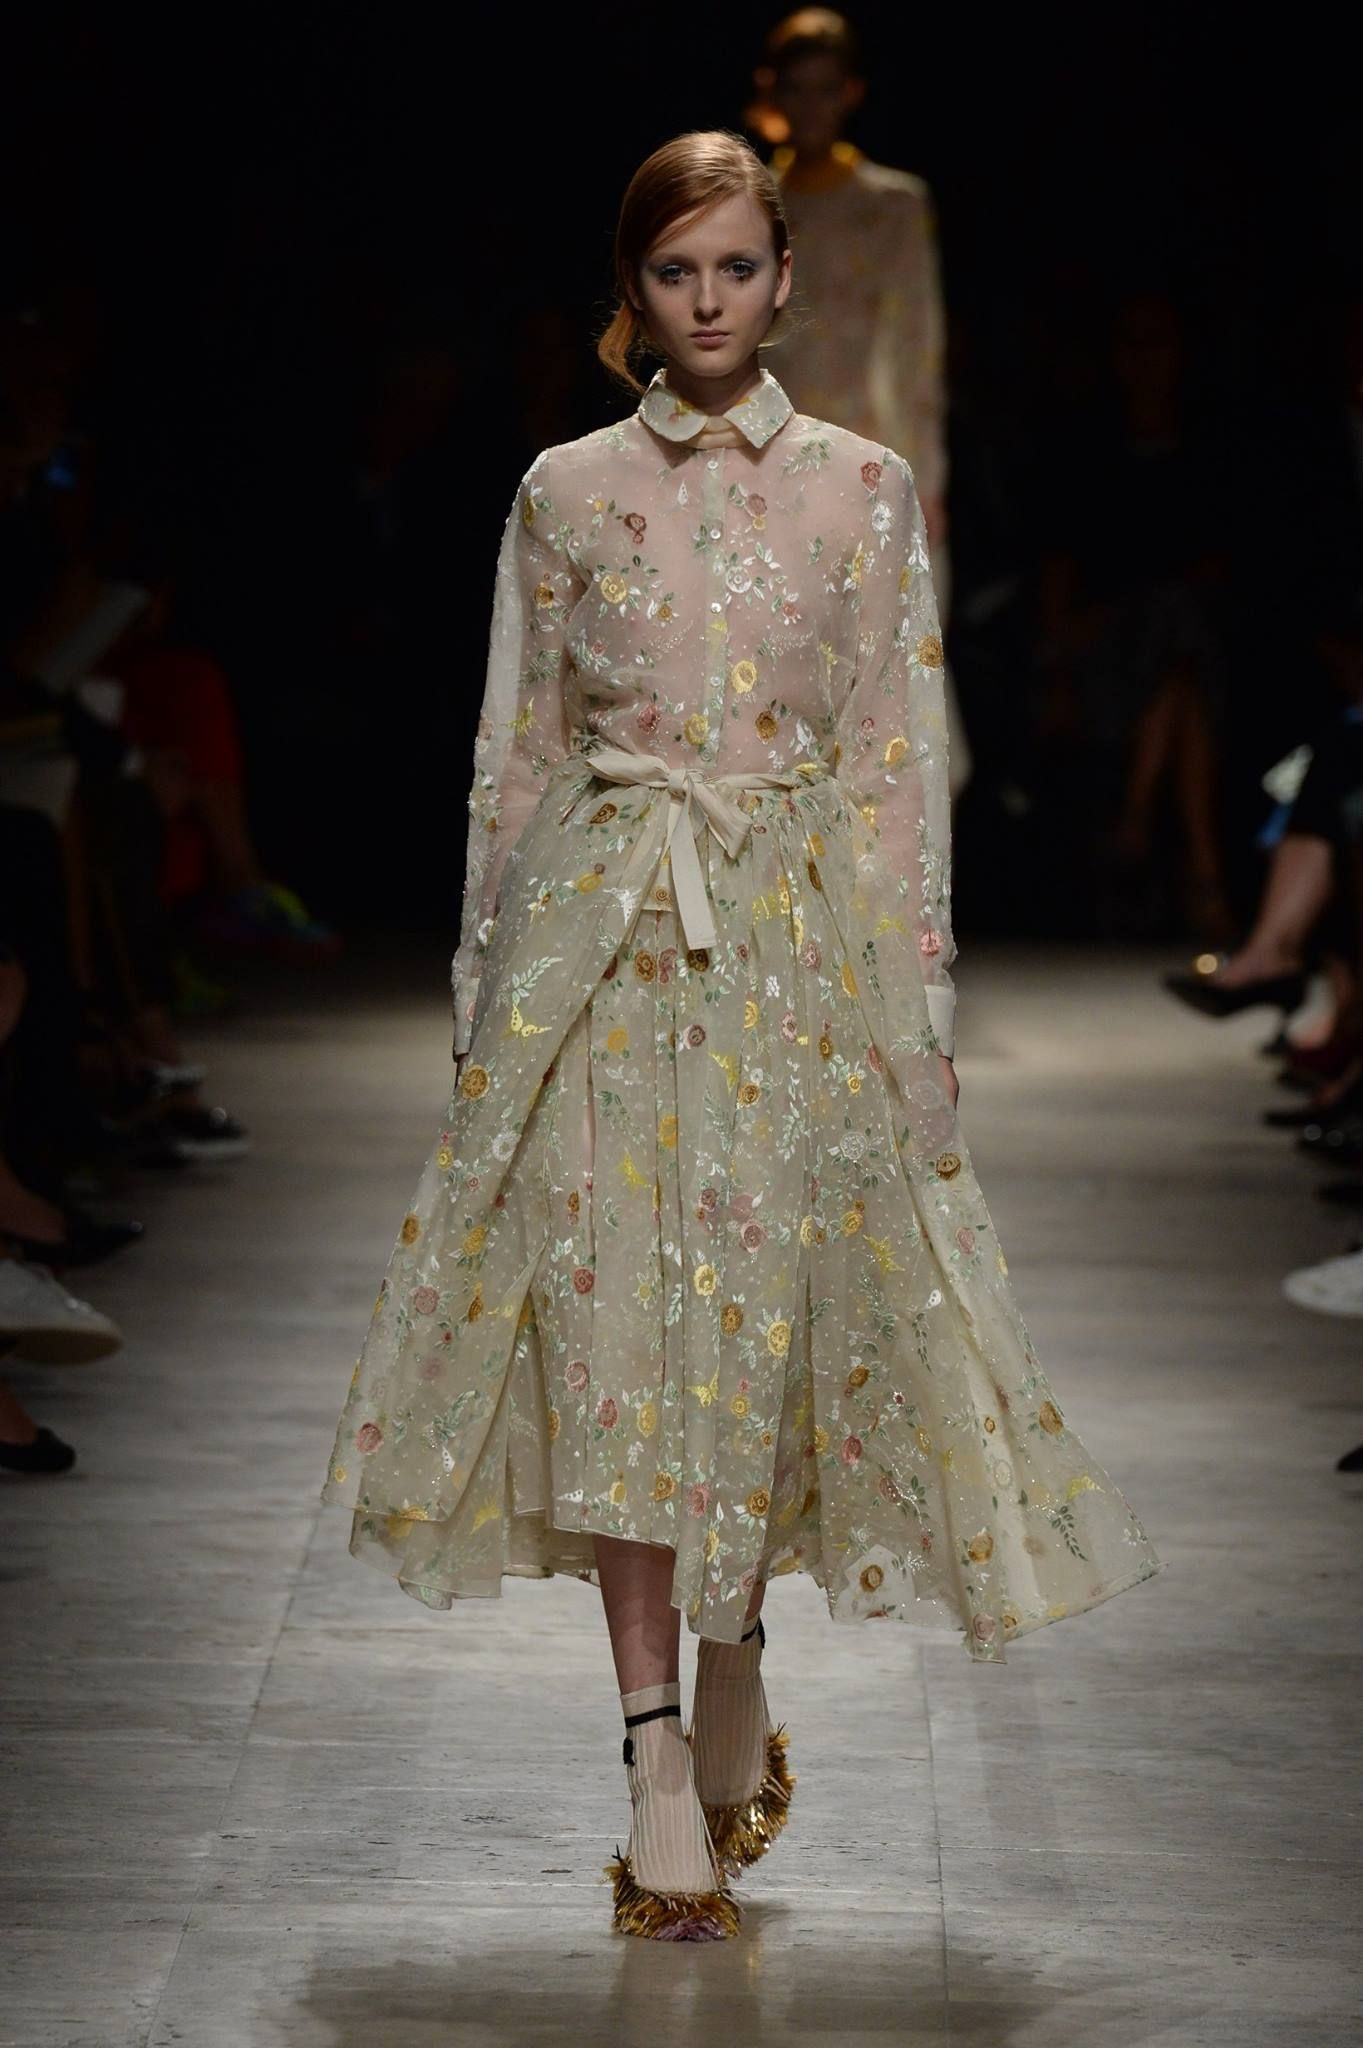 #SS15 saw a lighter touch from Alessandro Dell'Acqua